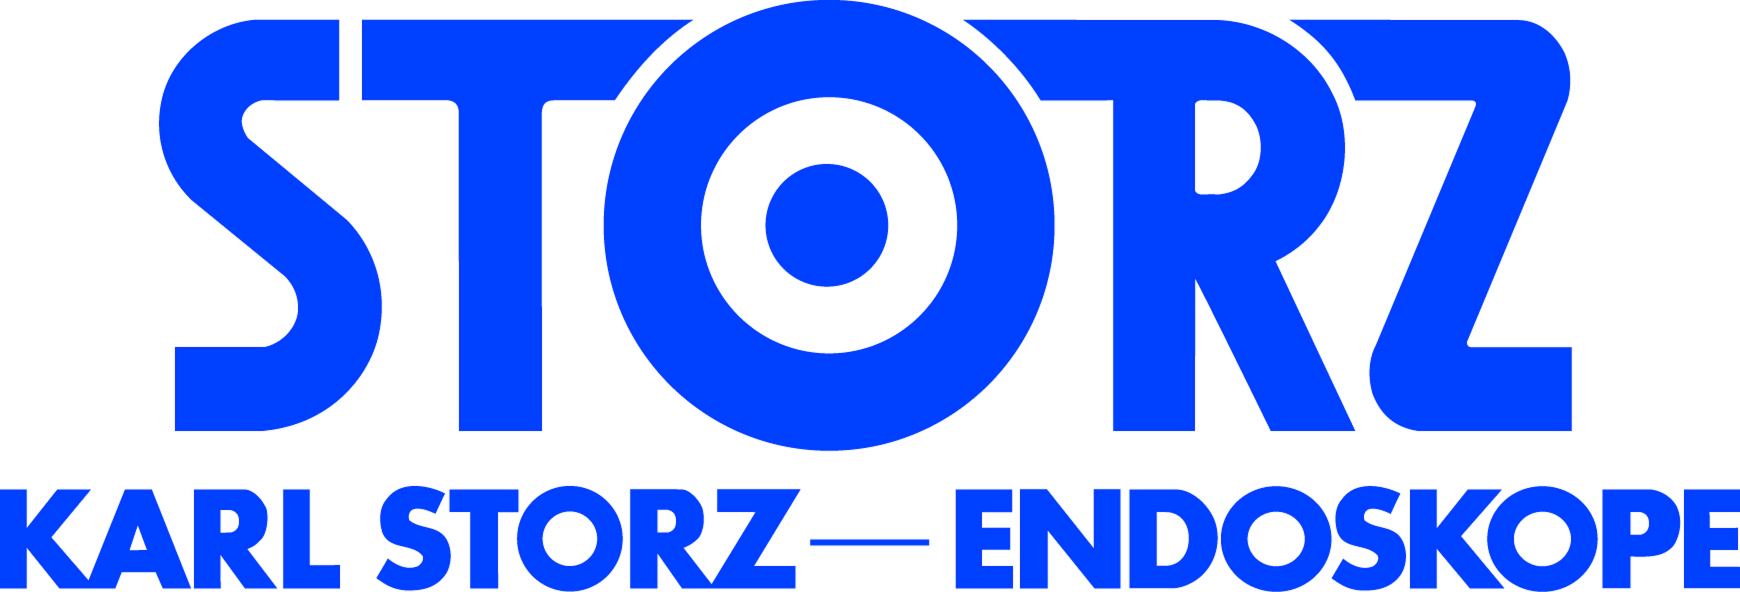 KARL STORZ Endoscopy (UK) Ltd